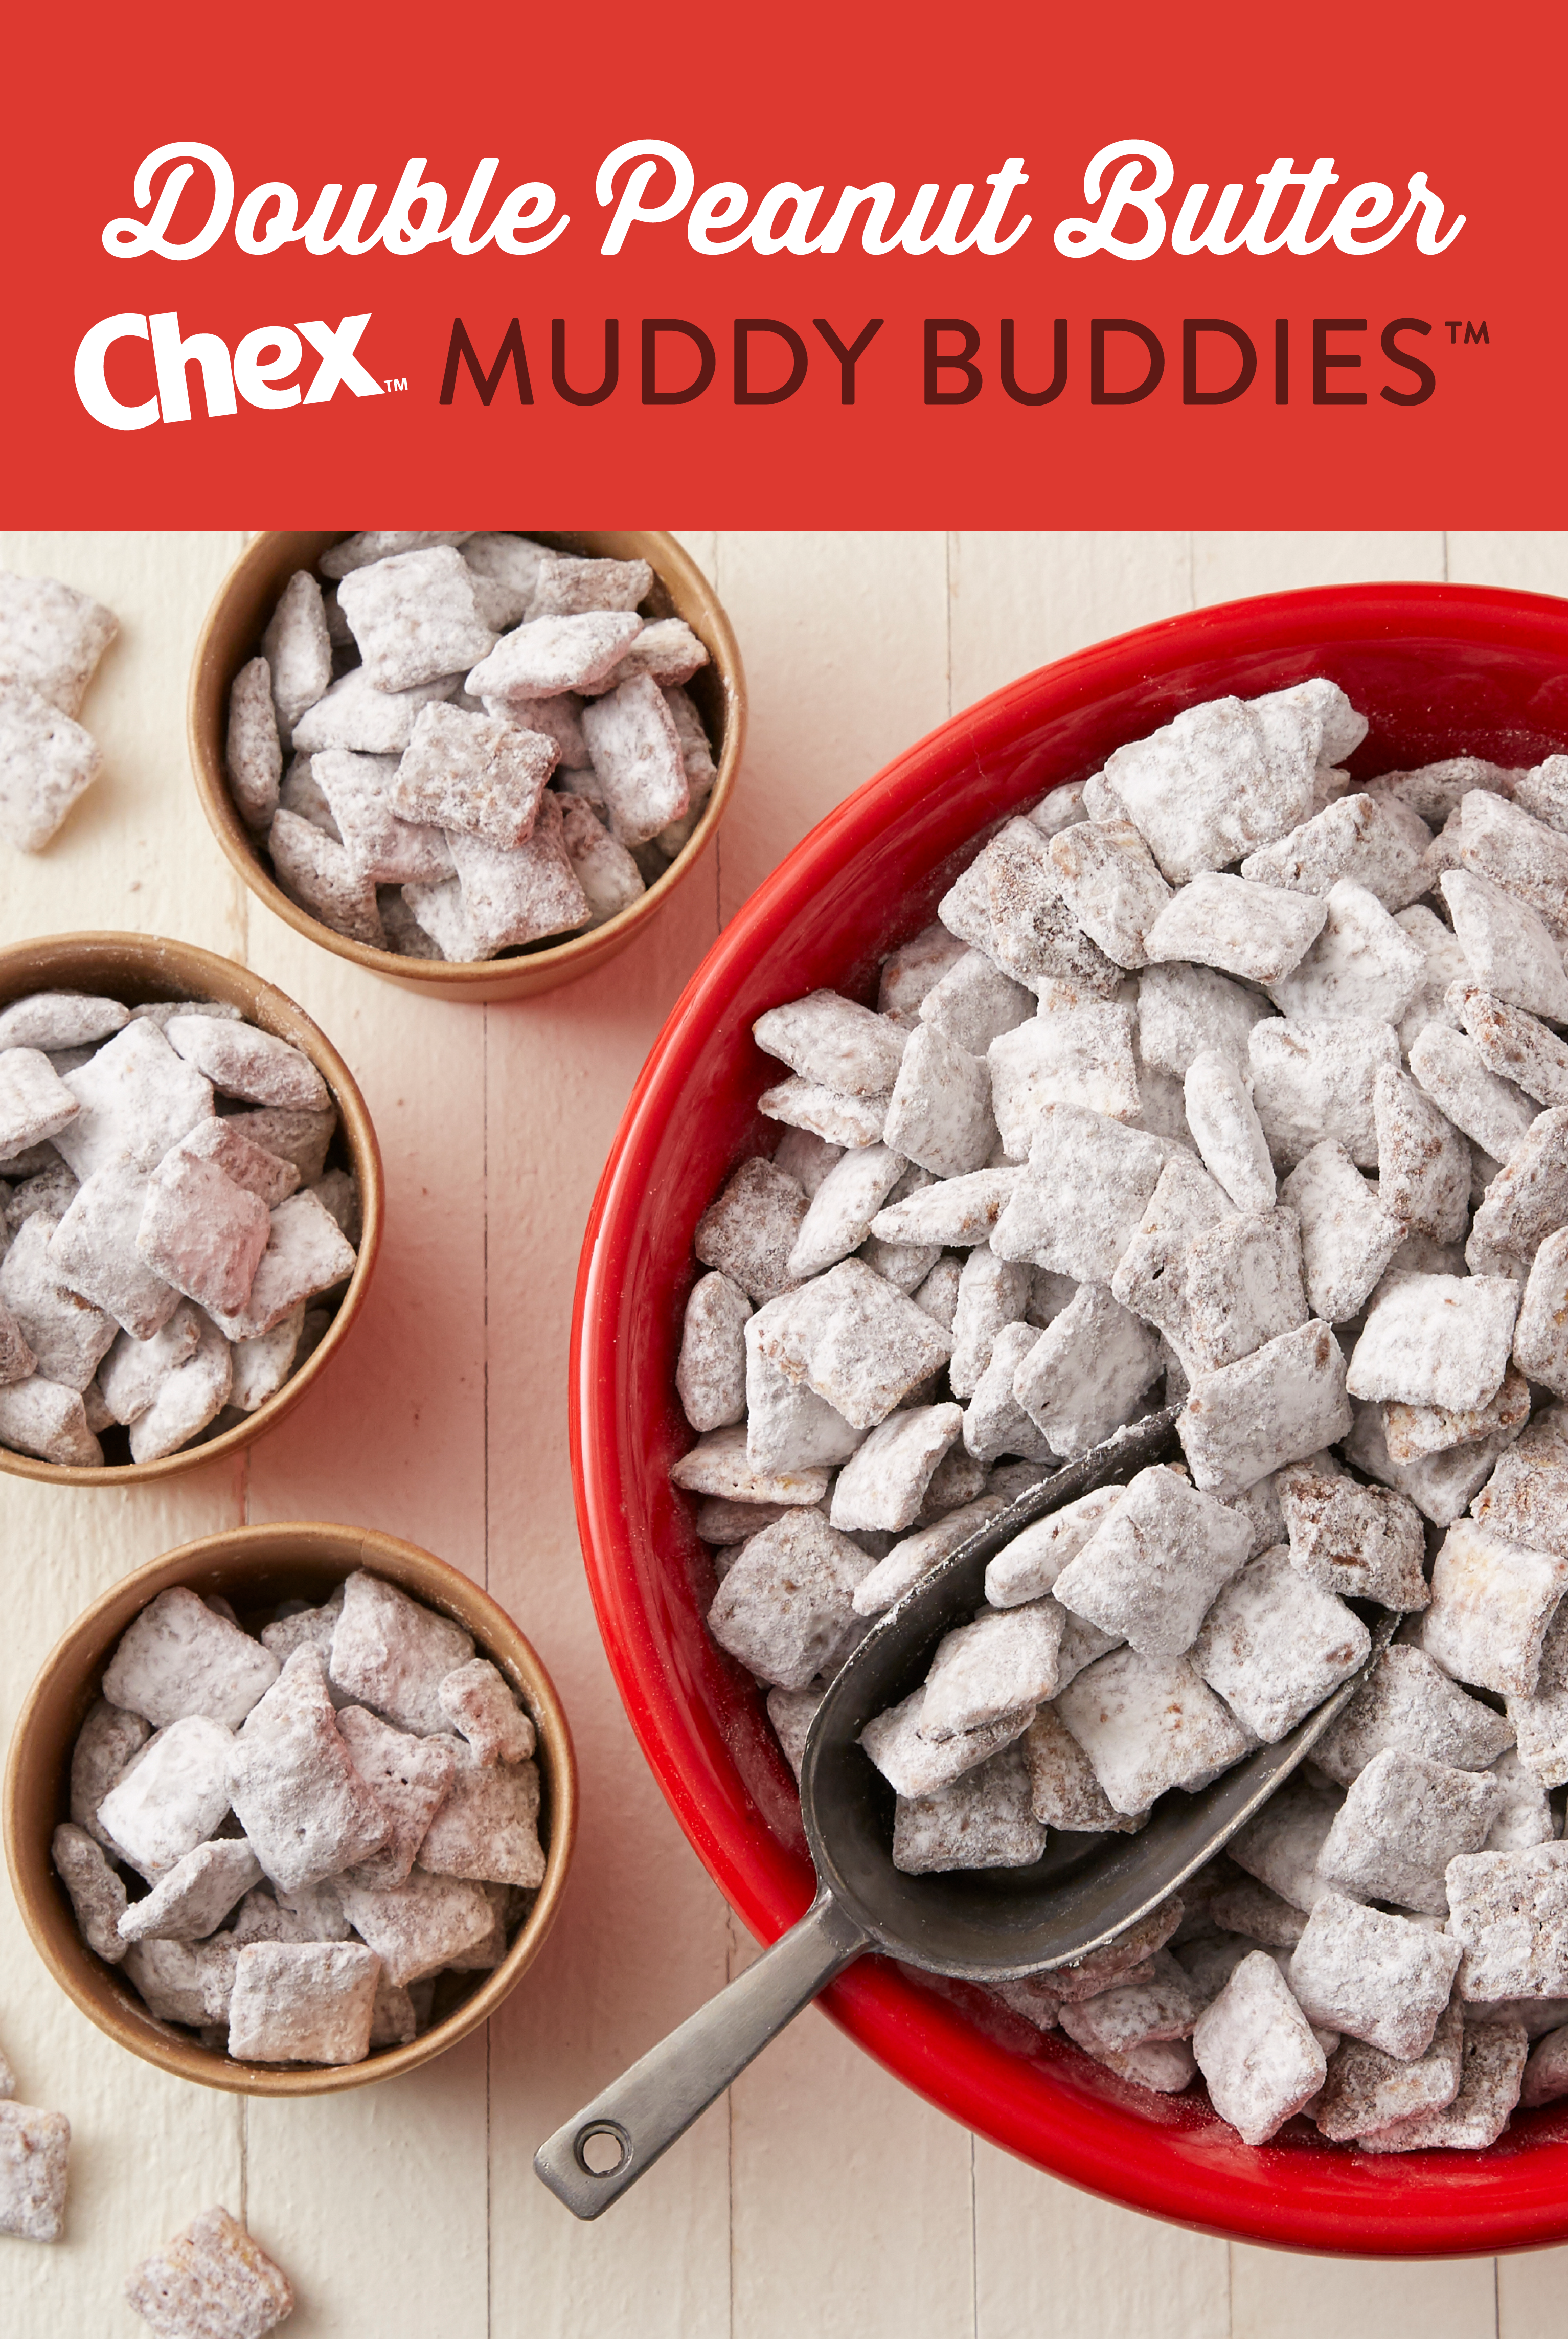 Double Peanut Butter Muddy Buddies Recipe Food Puppy Chow Recipes Food Drink